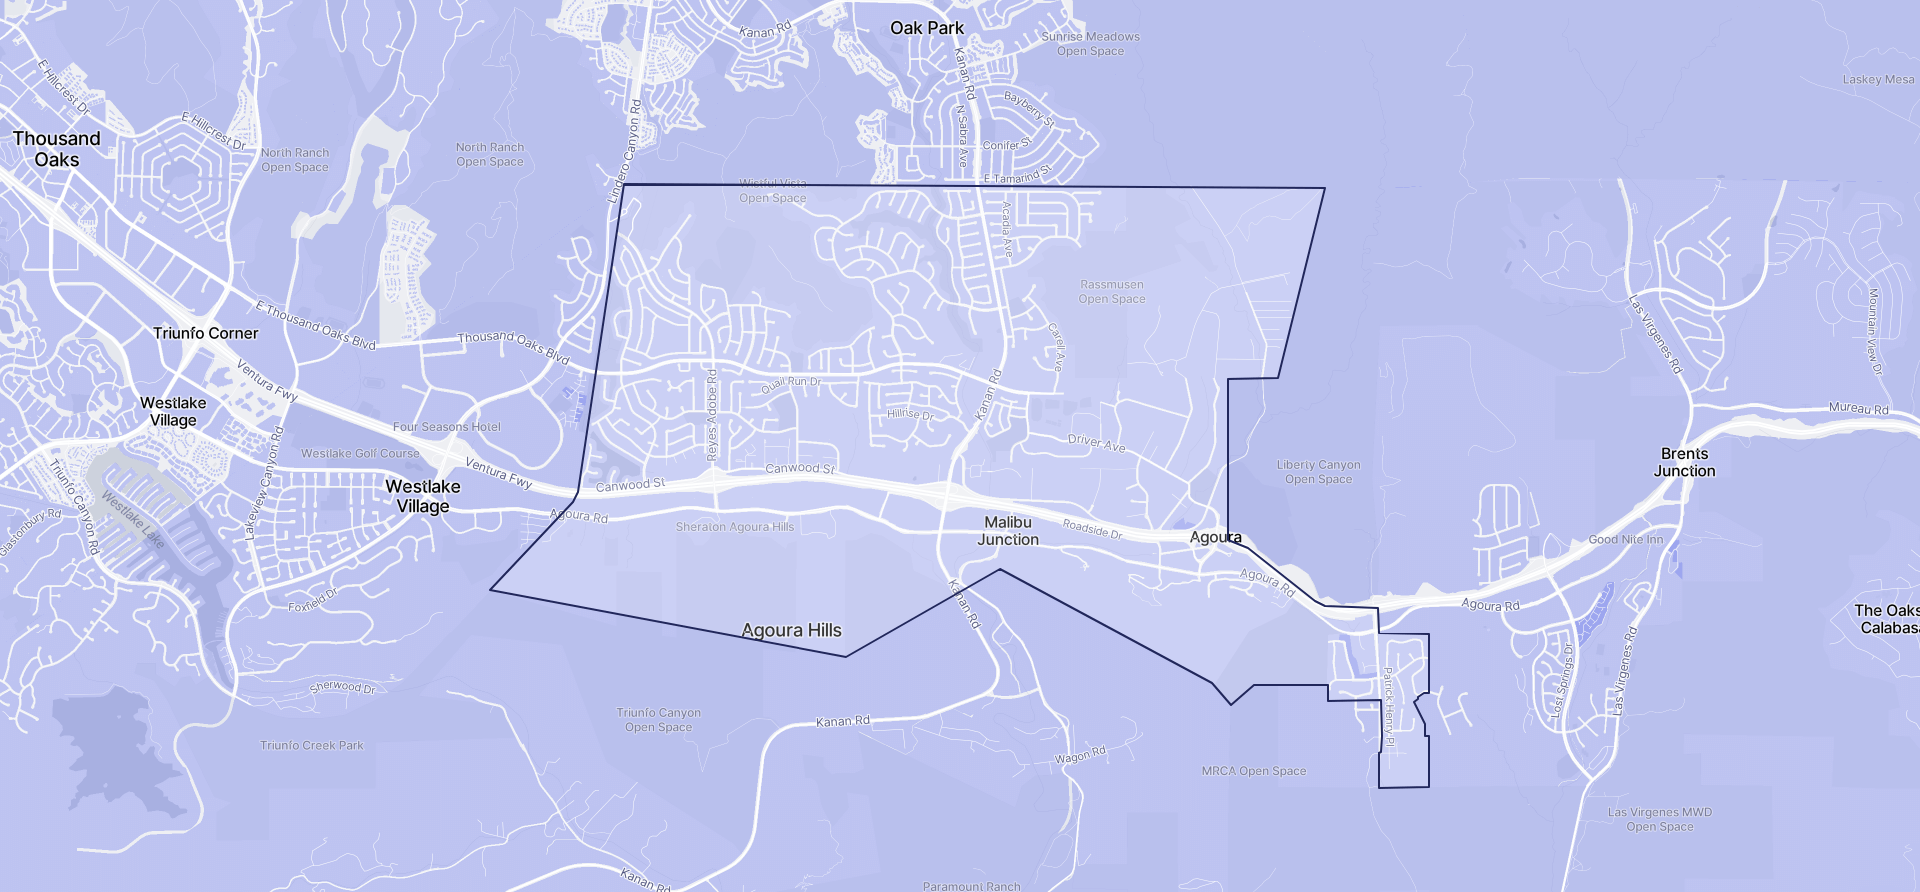 Image of Agoura Hills boundaries on a map.